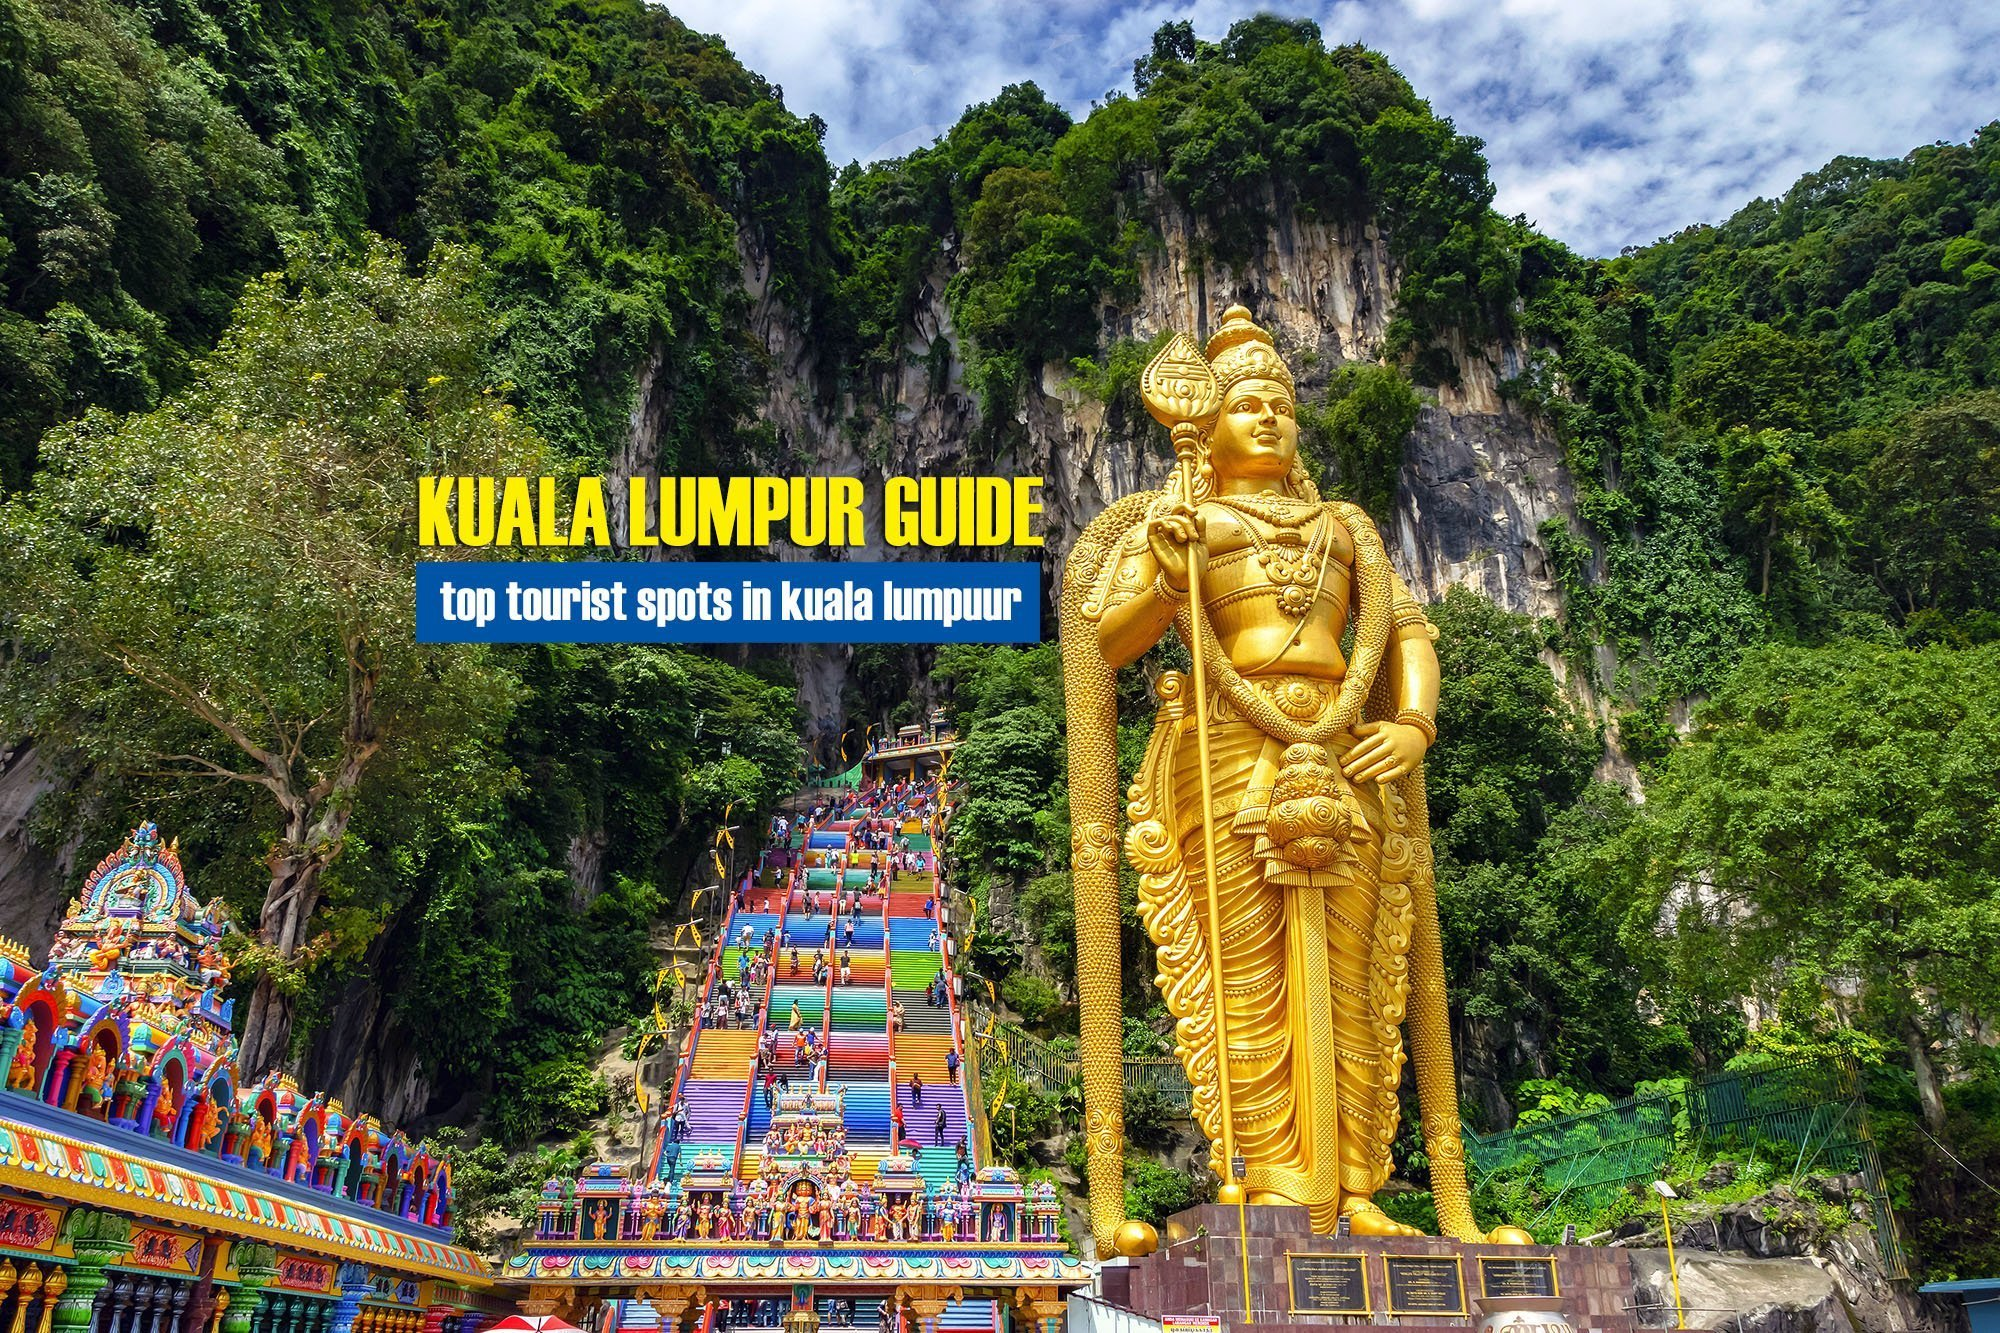 Top Tourist Spots in Kuala Lumpur You Should Visit